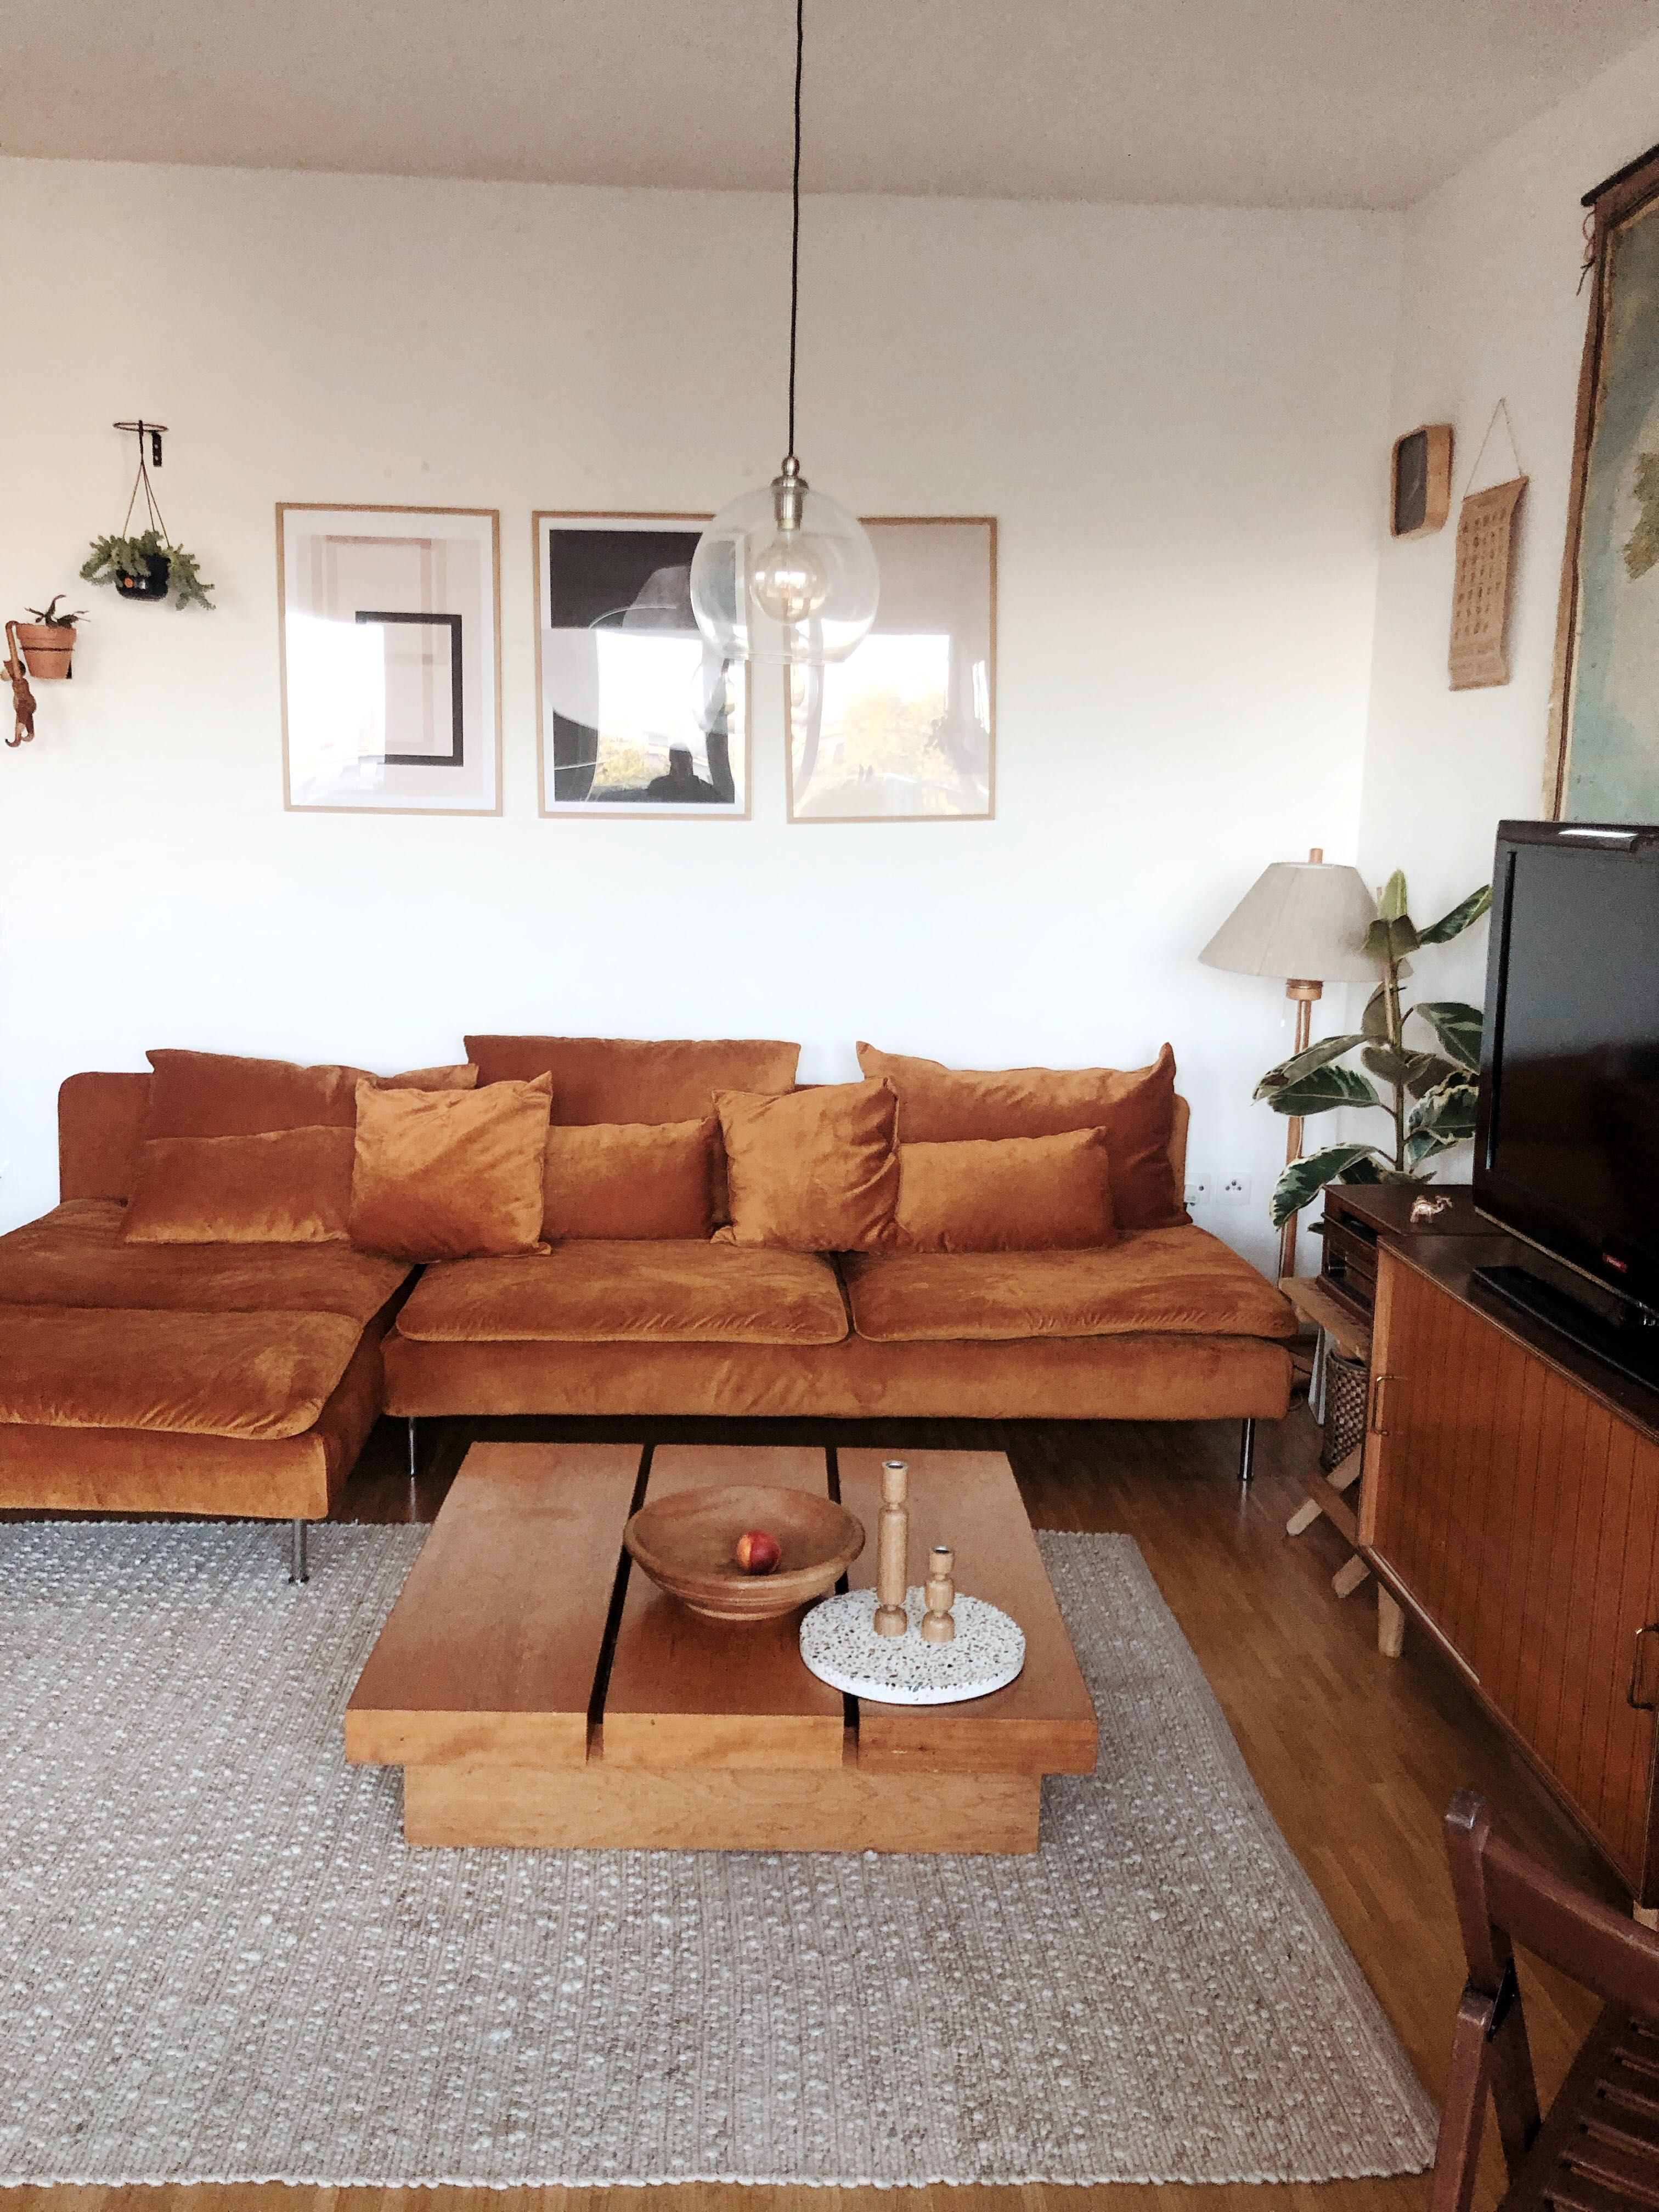 Opt For 70s Vibes With Tactile Fabrics And Rich Colours And Warm Wood Tones We Love Wienerwohnzim Living Room Warm Warm Living Room Design Ikea Living Room